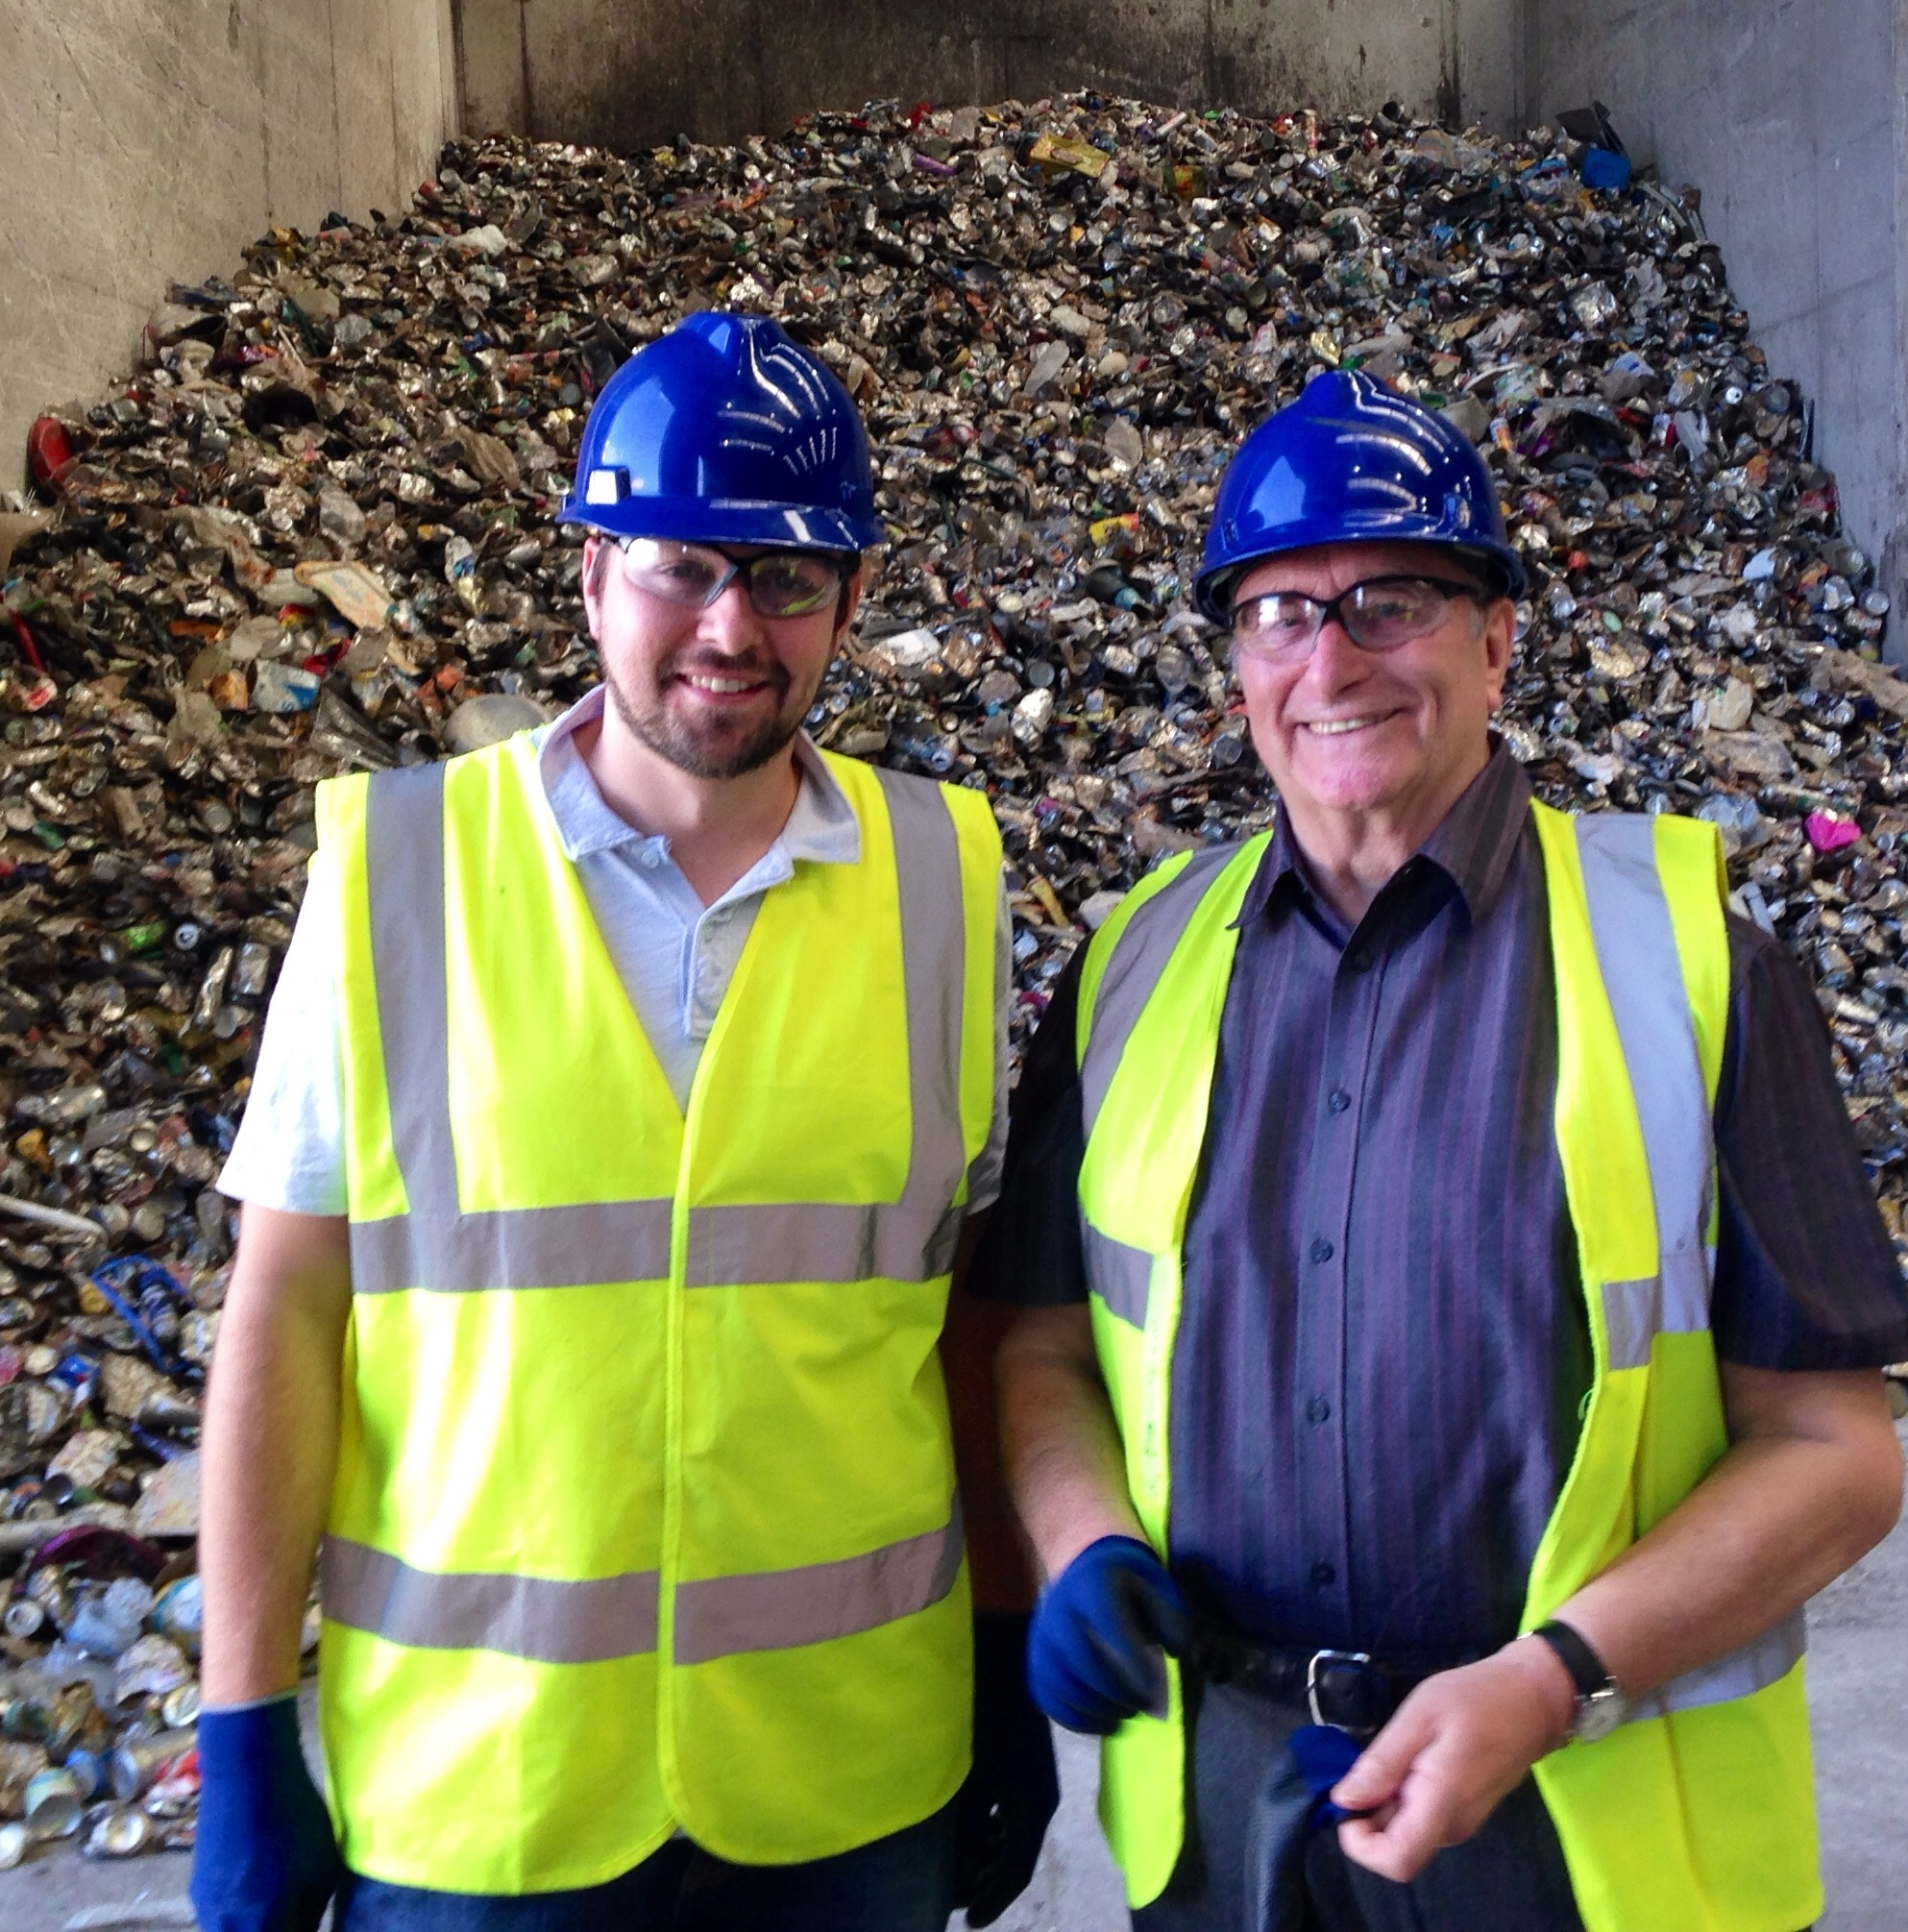 Pic_at_Recycling_Plant.JPG